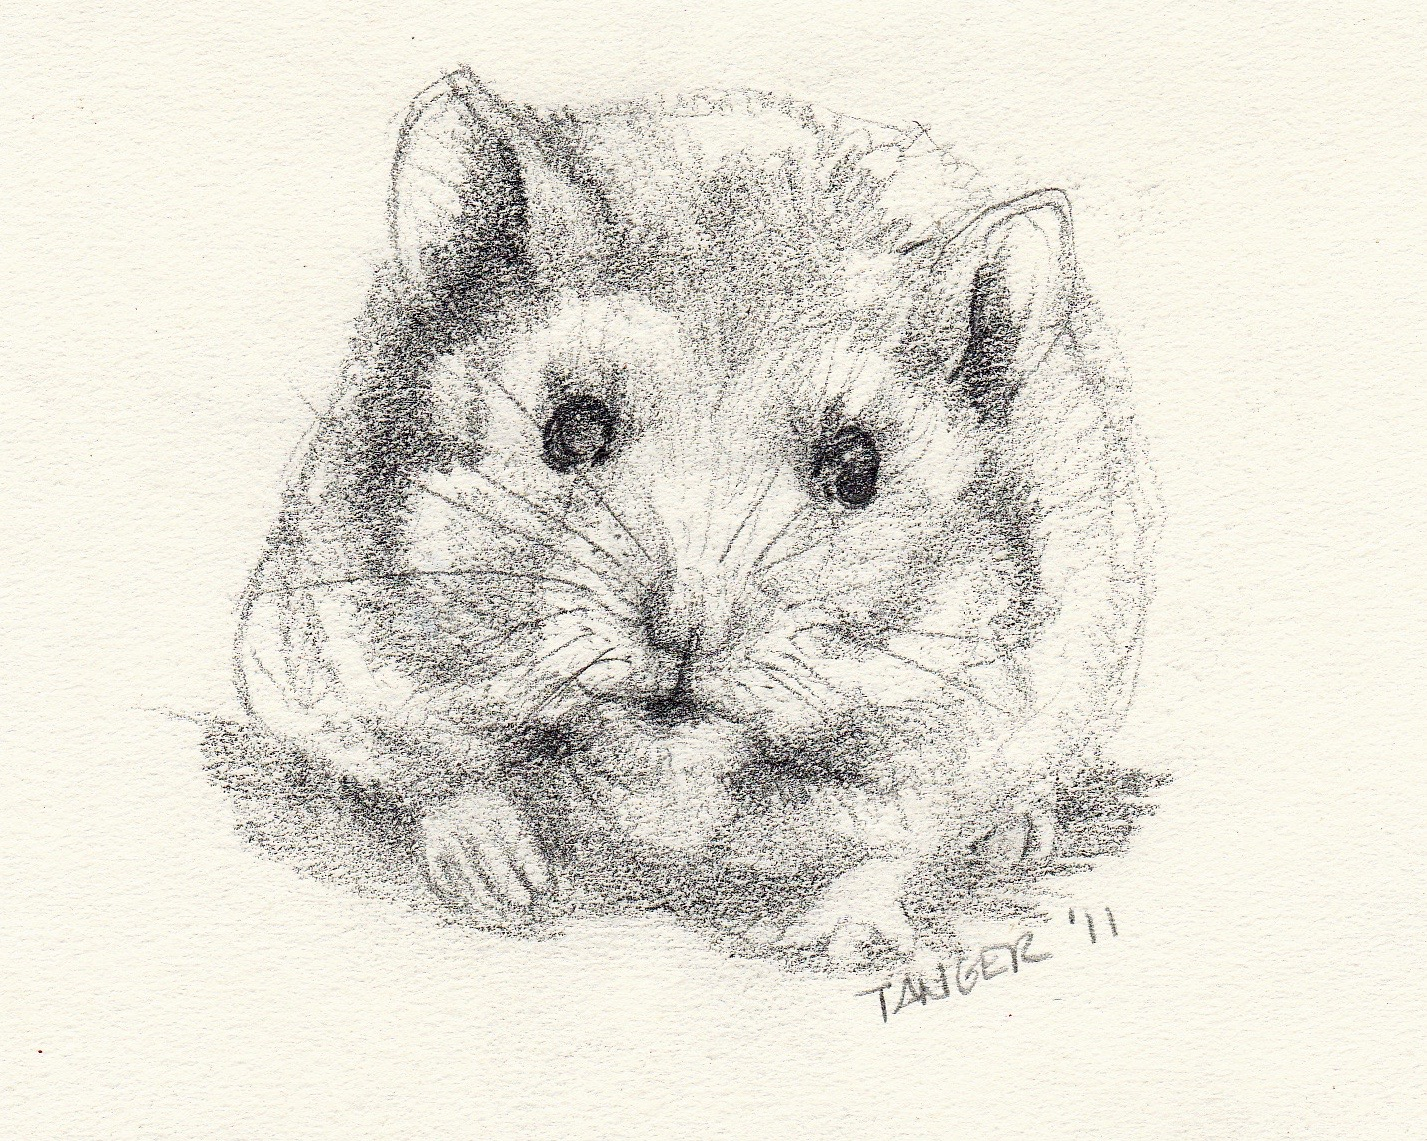 pencil sketch of crouching hamster